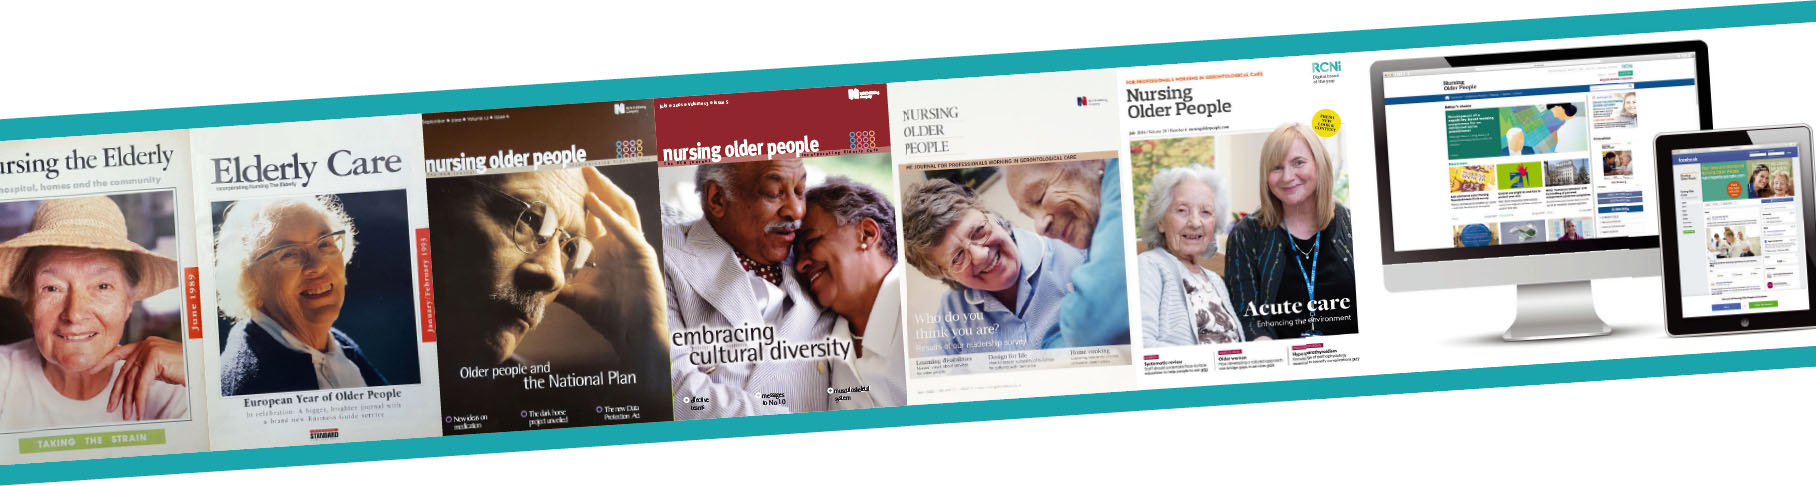 Three decades of older people's nursing reflected in our pages